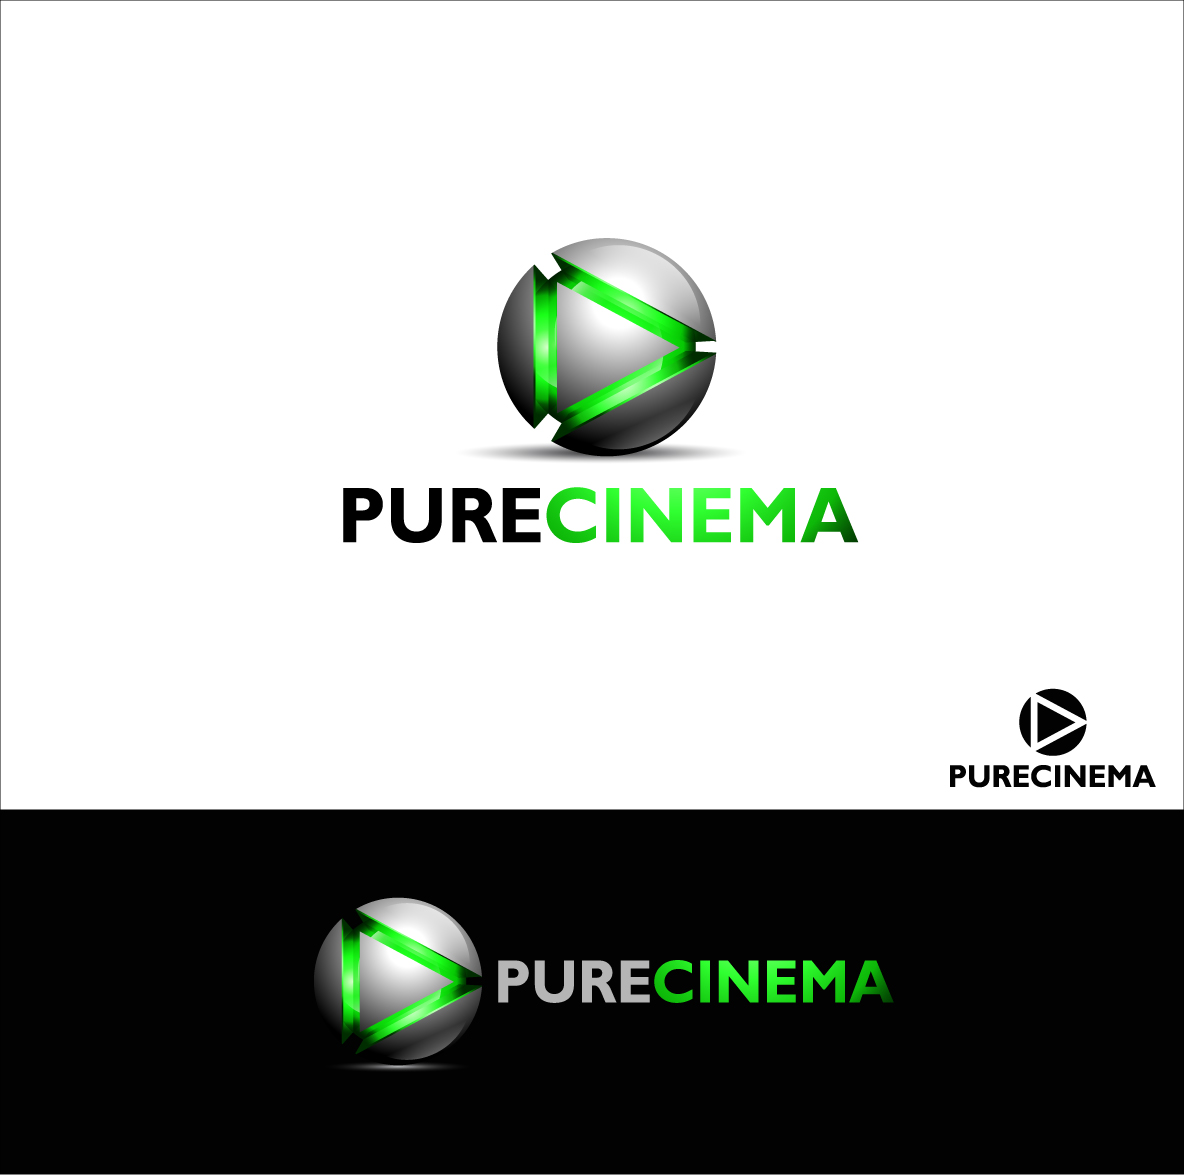 Logo Design by zoiDesign - Entry No. 106 in the Logo Design Contest Imaginative Logo Design for Pure Cinema.